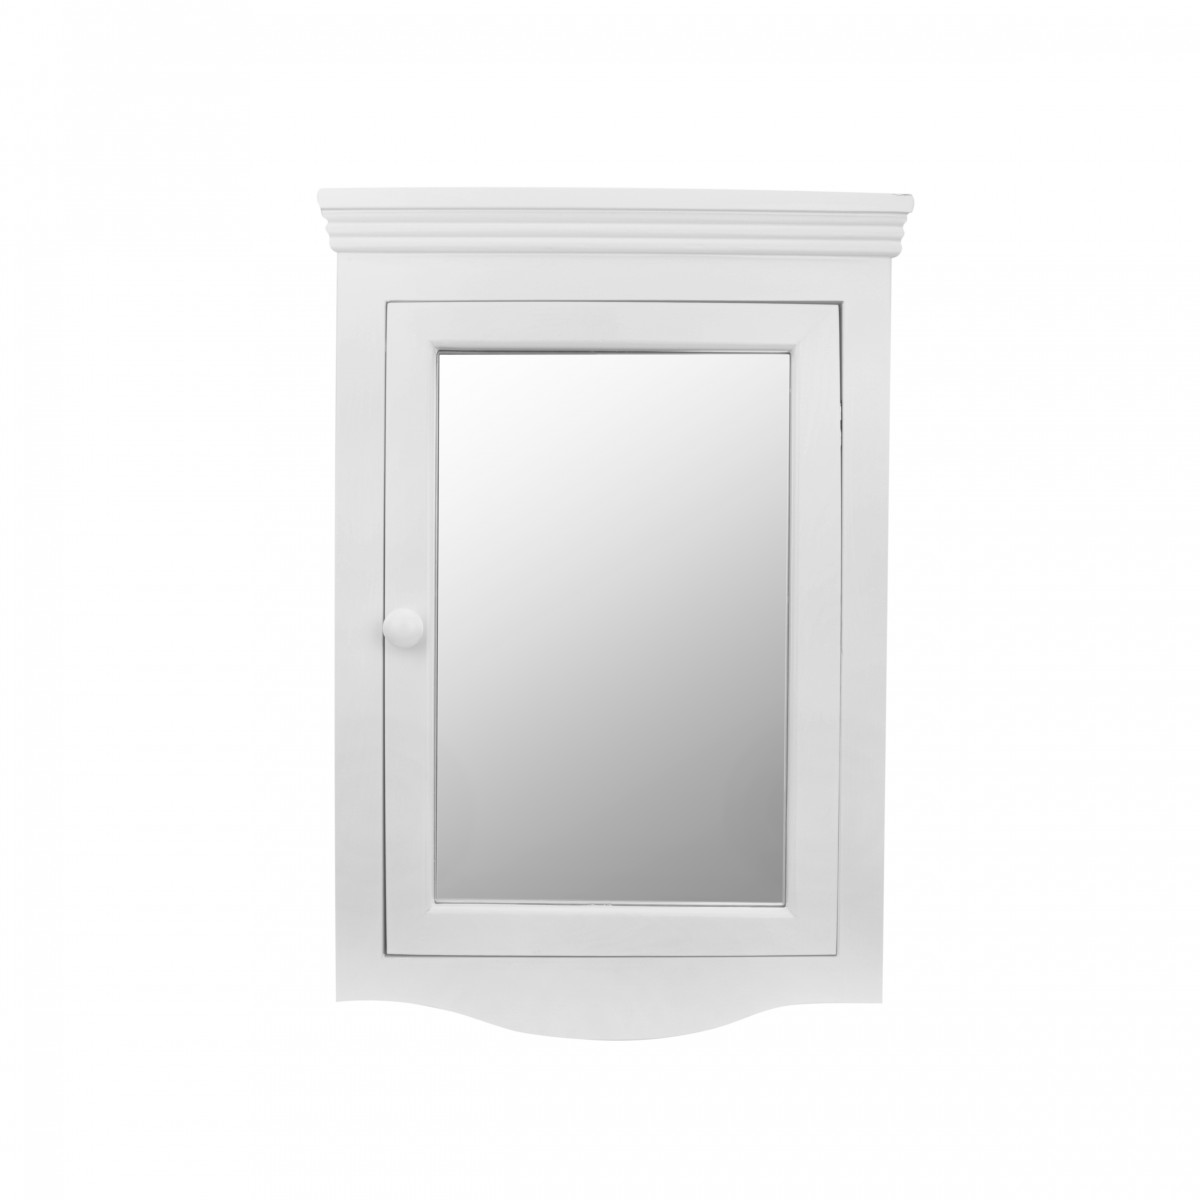 Wall Mounted Medicine Cabinet Mirror white bathroom wall mount medicine cabinet mirrored door fully pre